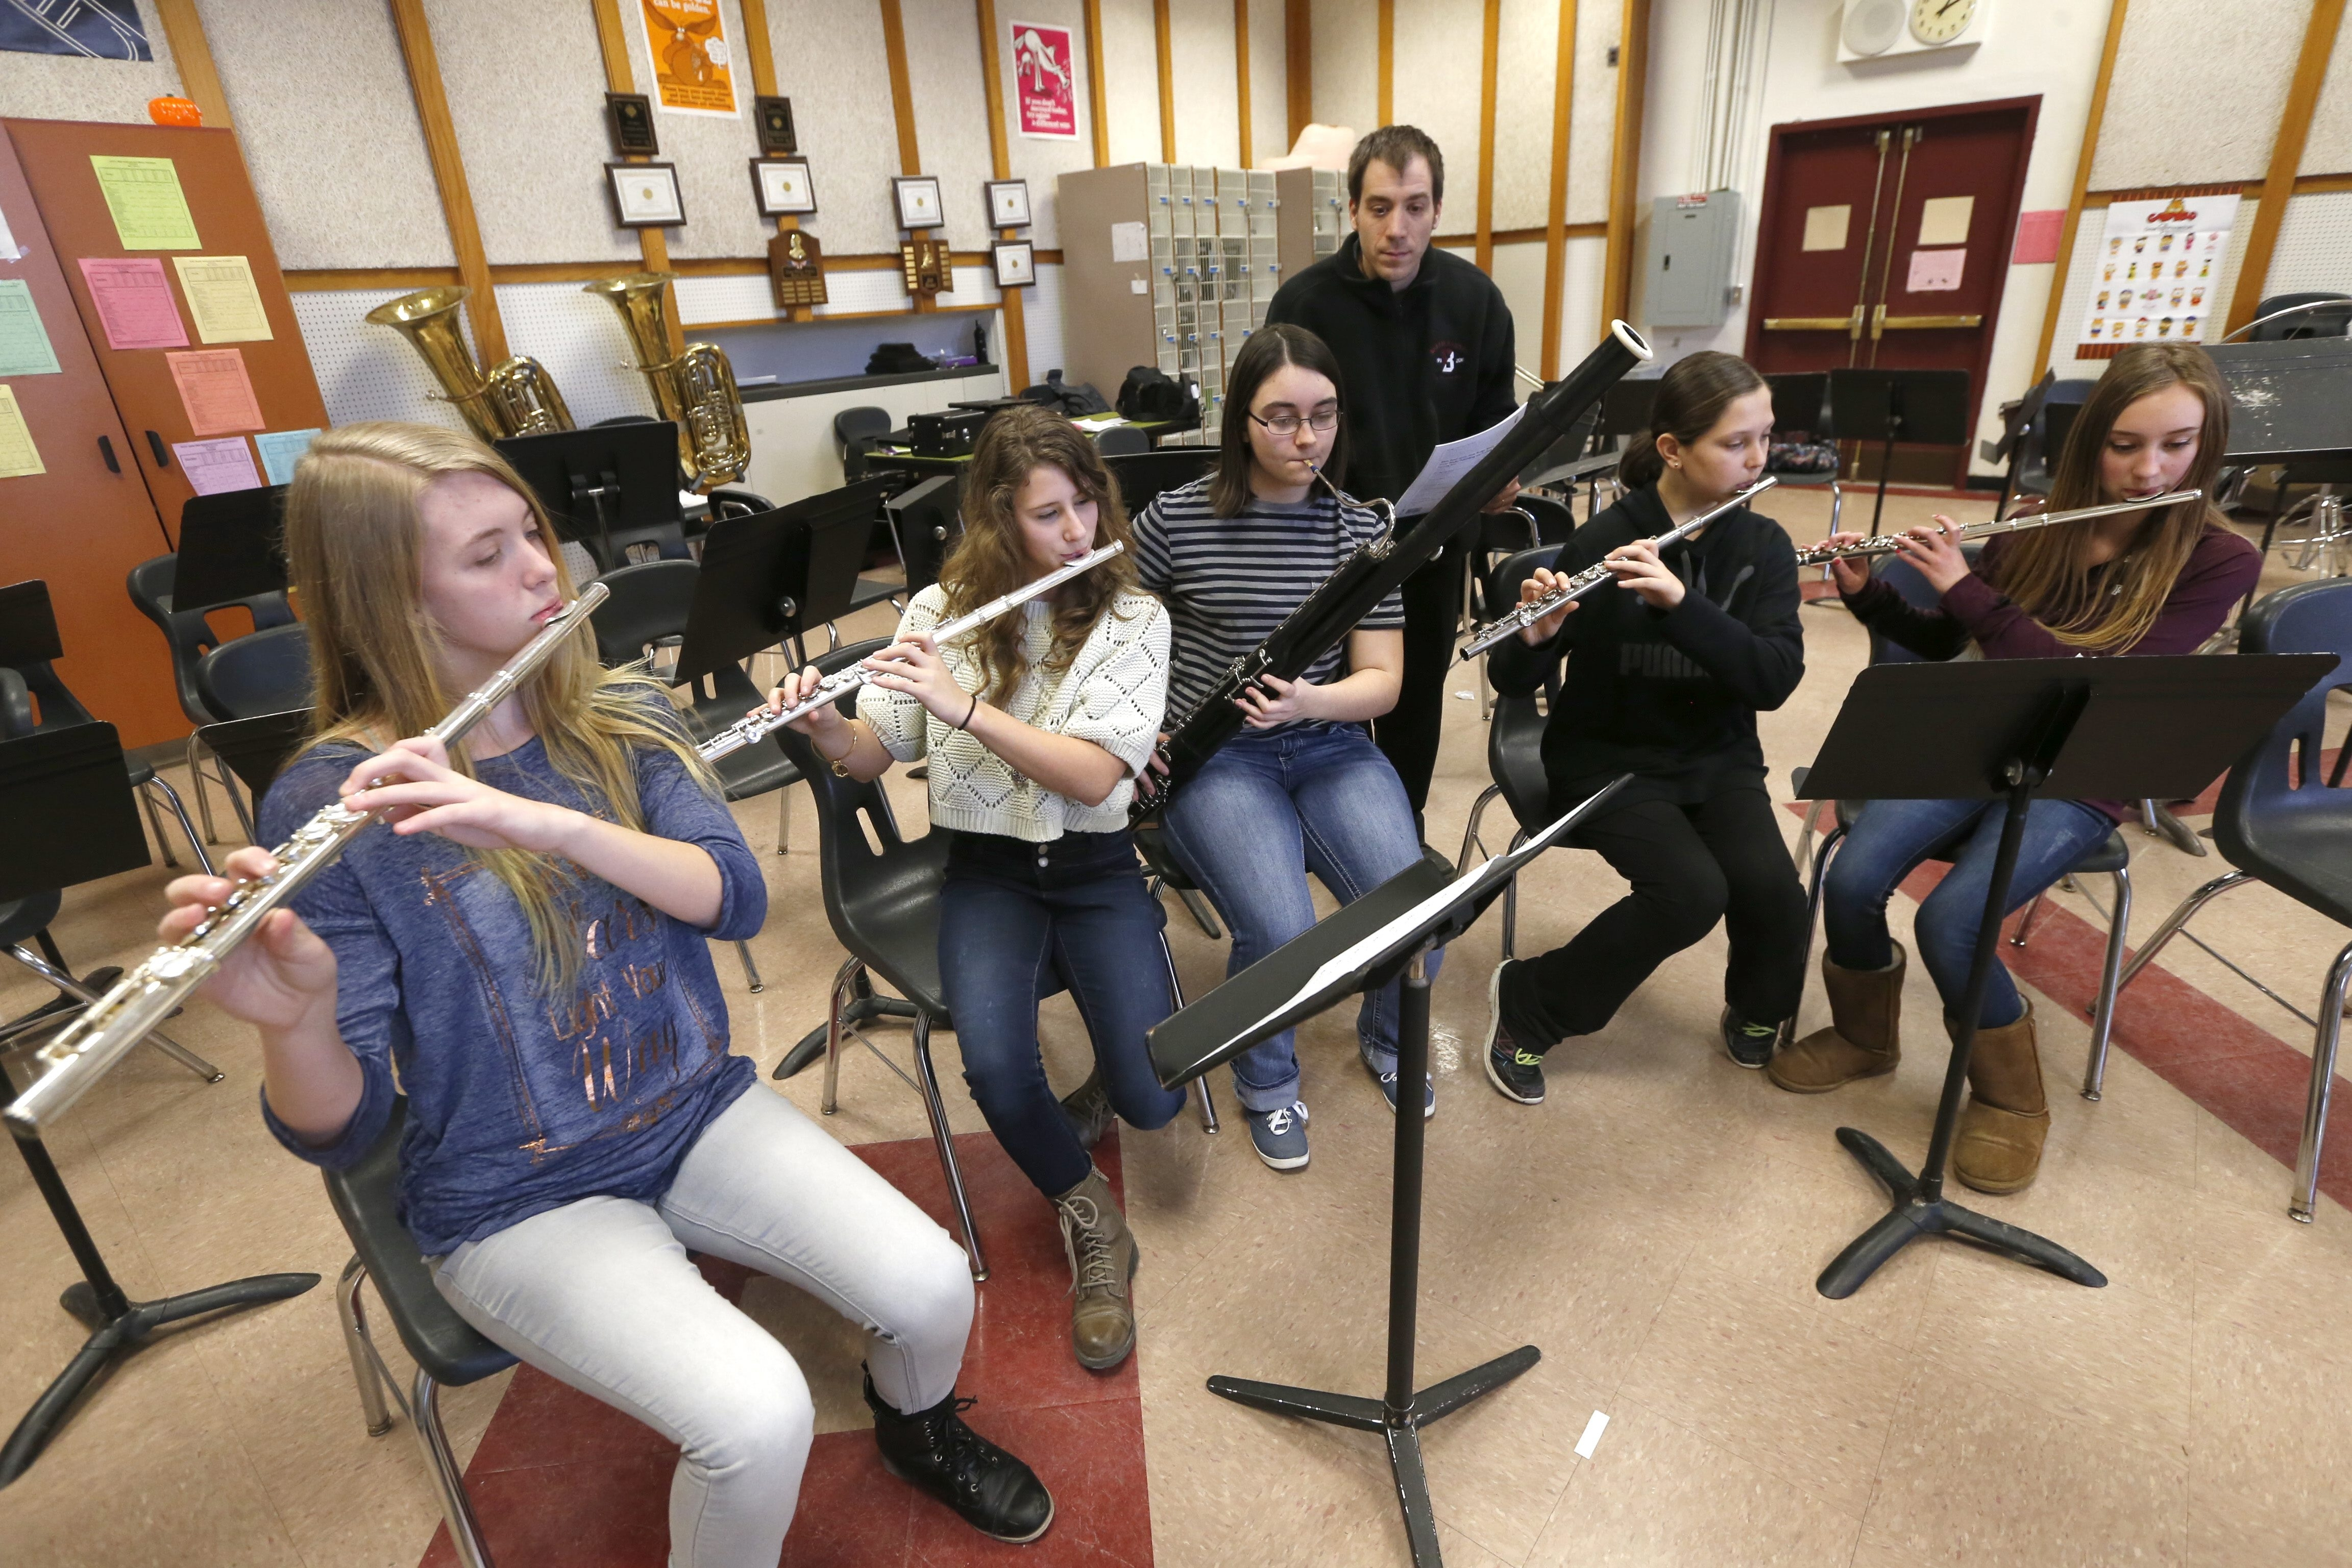 Music teacher Jeff Rappold works with students, from left, Jessalynn Coen, 13, Madison Gancasz, 12, Serena Flint, 16, Kazmira Hanel, 12, and Emma Rose, 13, at Barker High School recently.